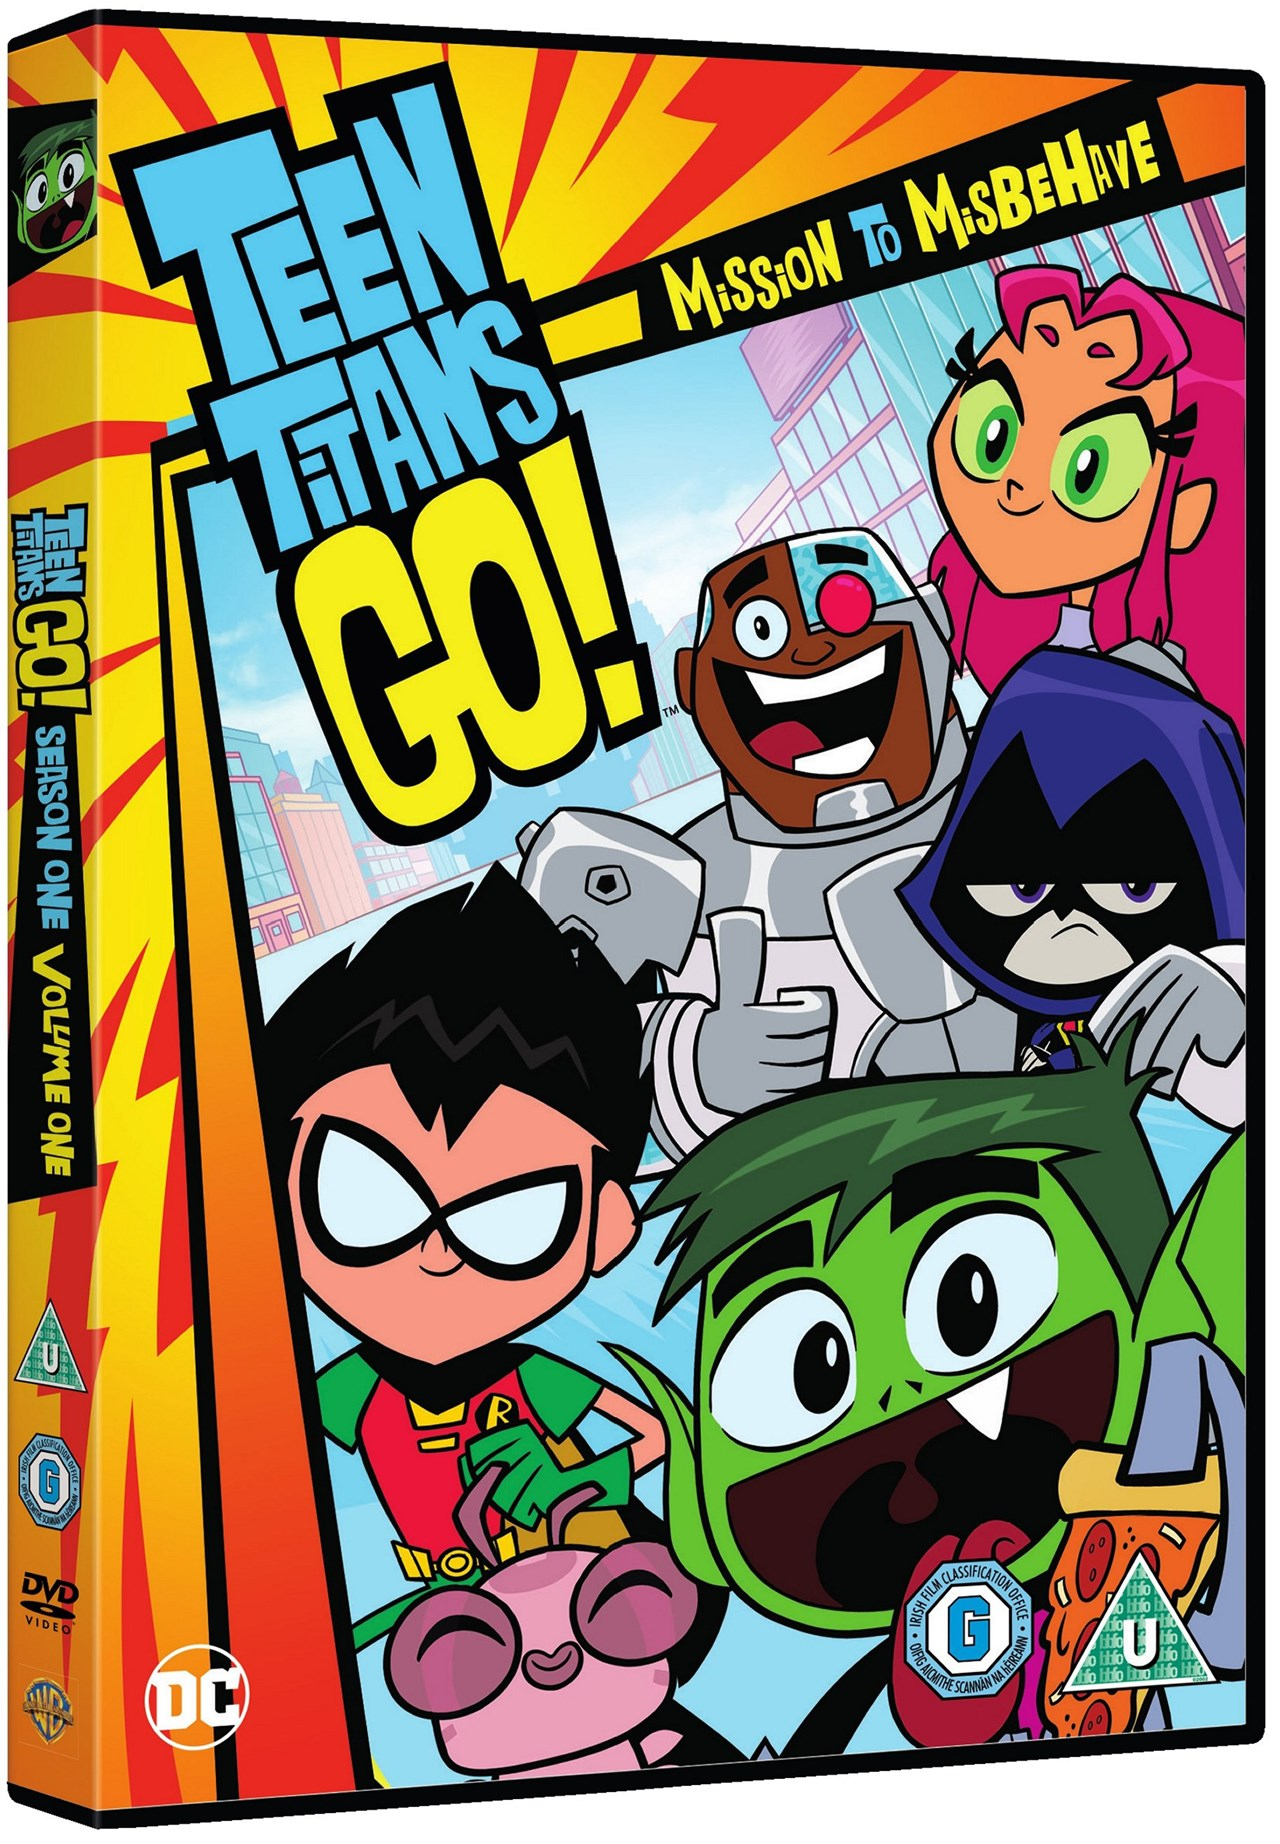 Teen Titans Go!: Mission to Misbehave - 2